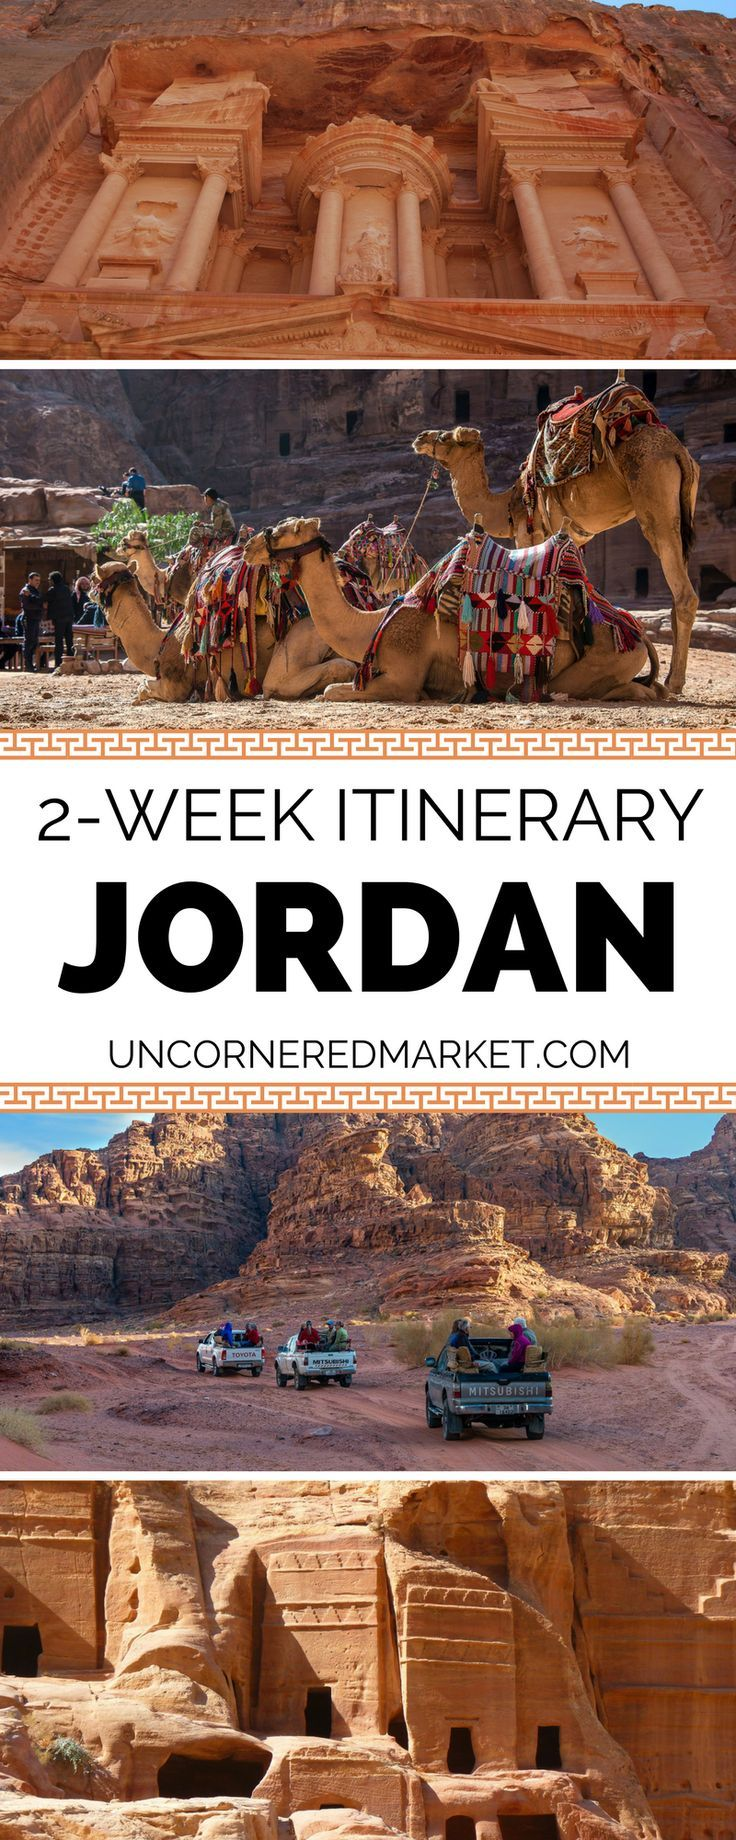 A 2-week itinerary to exploring Jordan. Best things to do and see including Petra, Wadi Rum, the Dead Sea, the capital city of Amman, the diving mecca of Aqaba + so much more. Travel in the Middle East. | Uncornered Market Travel Blog